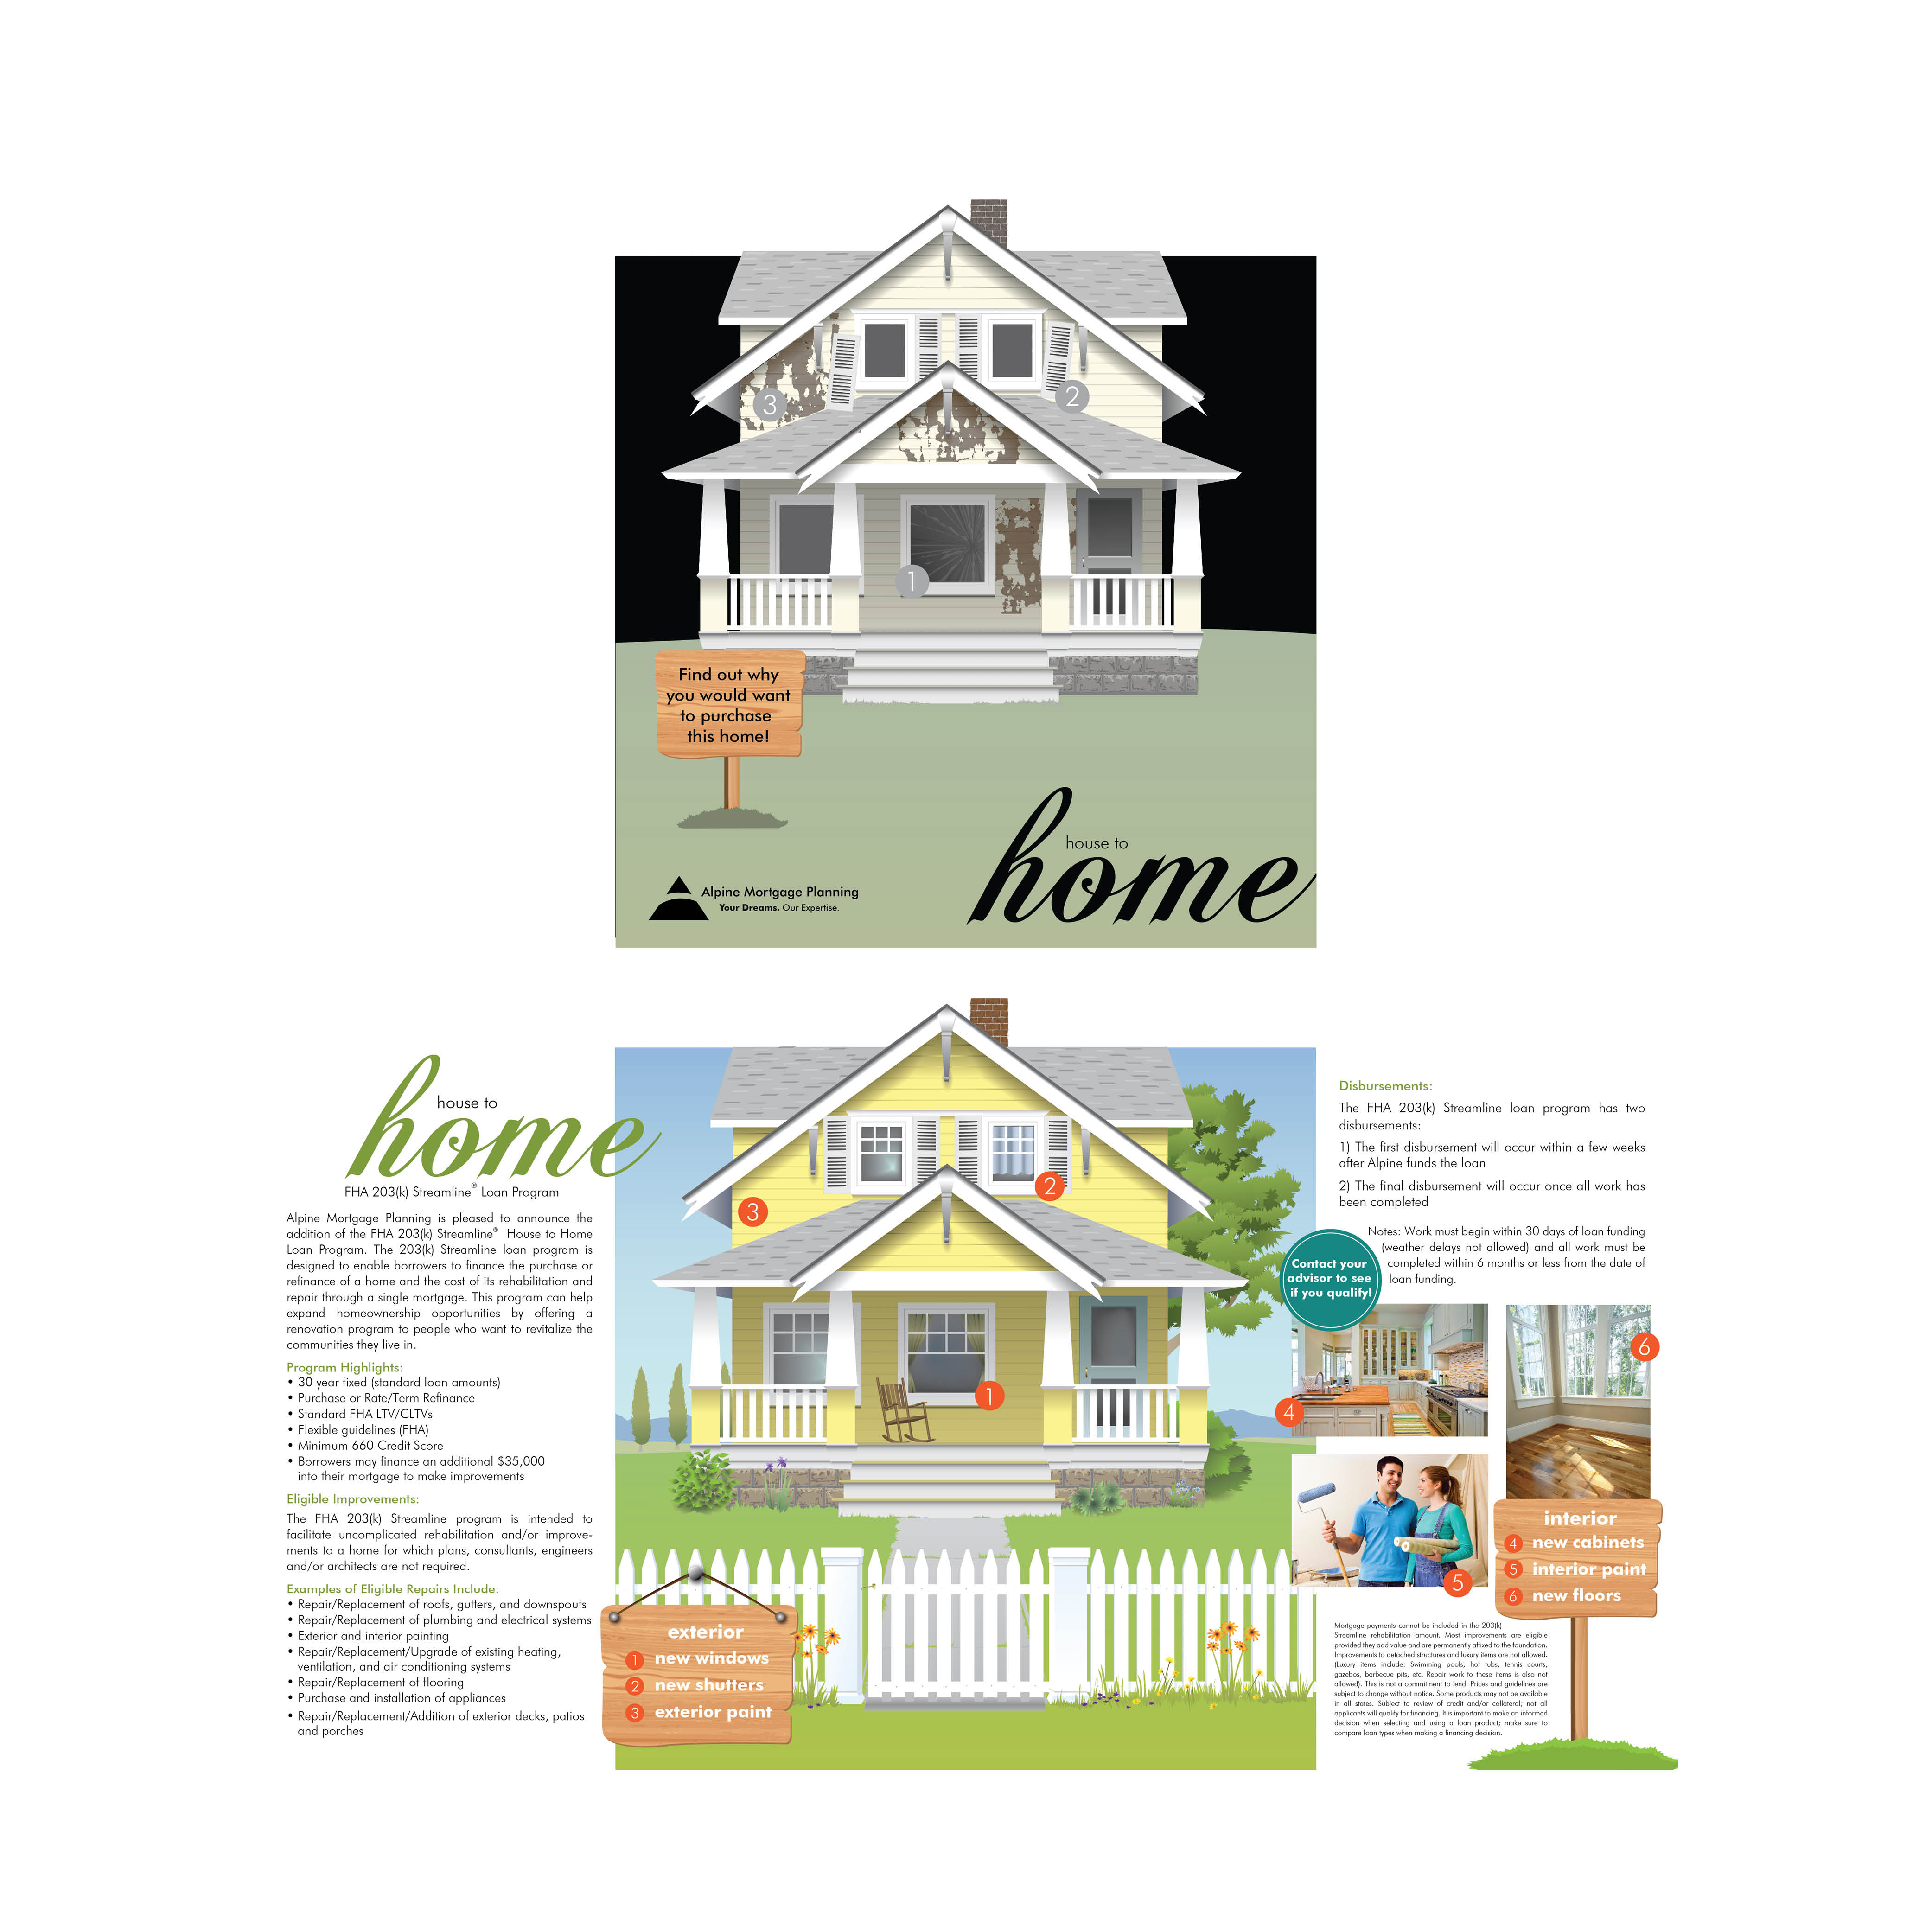 HOUSE TO HOME LOAN PROGRAM